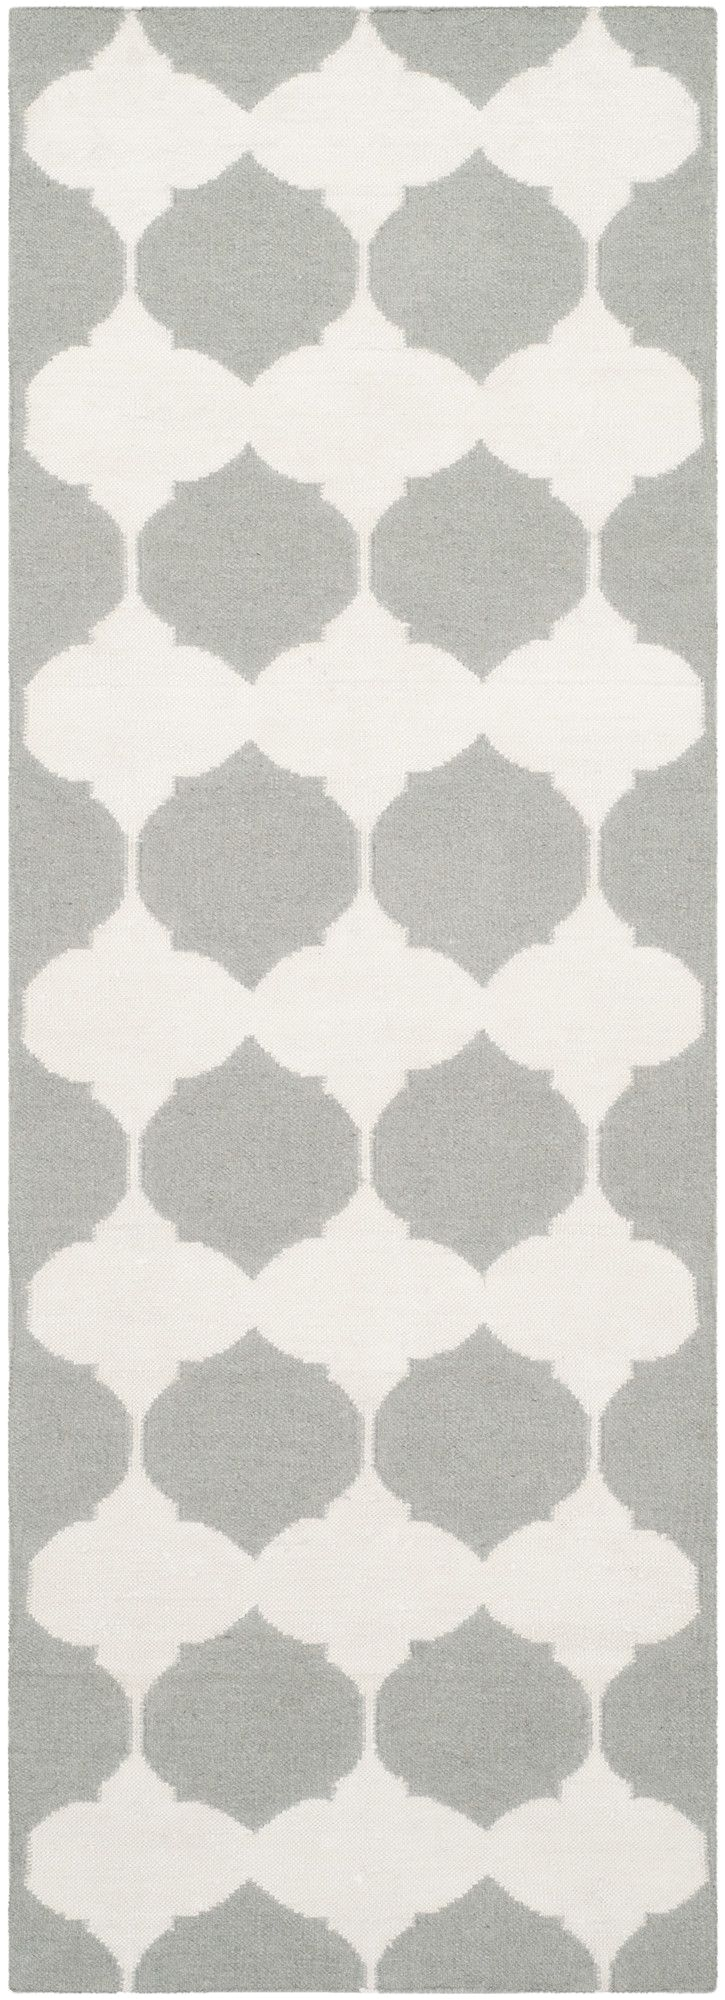 dhurries grey ivory area rug